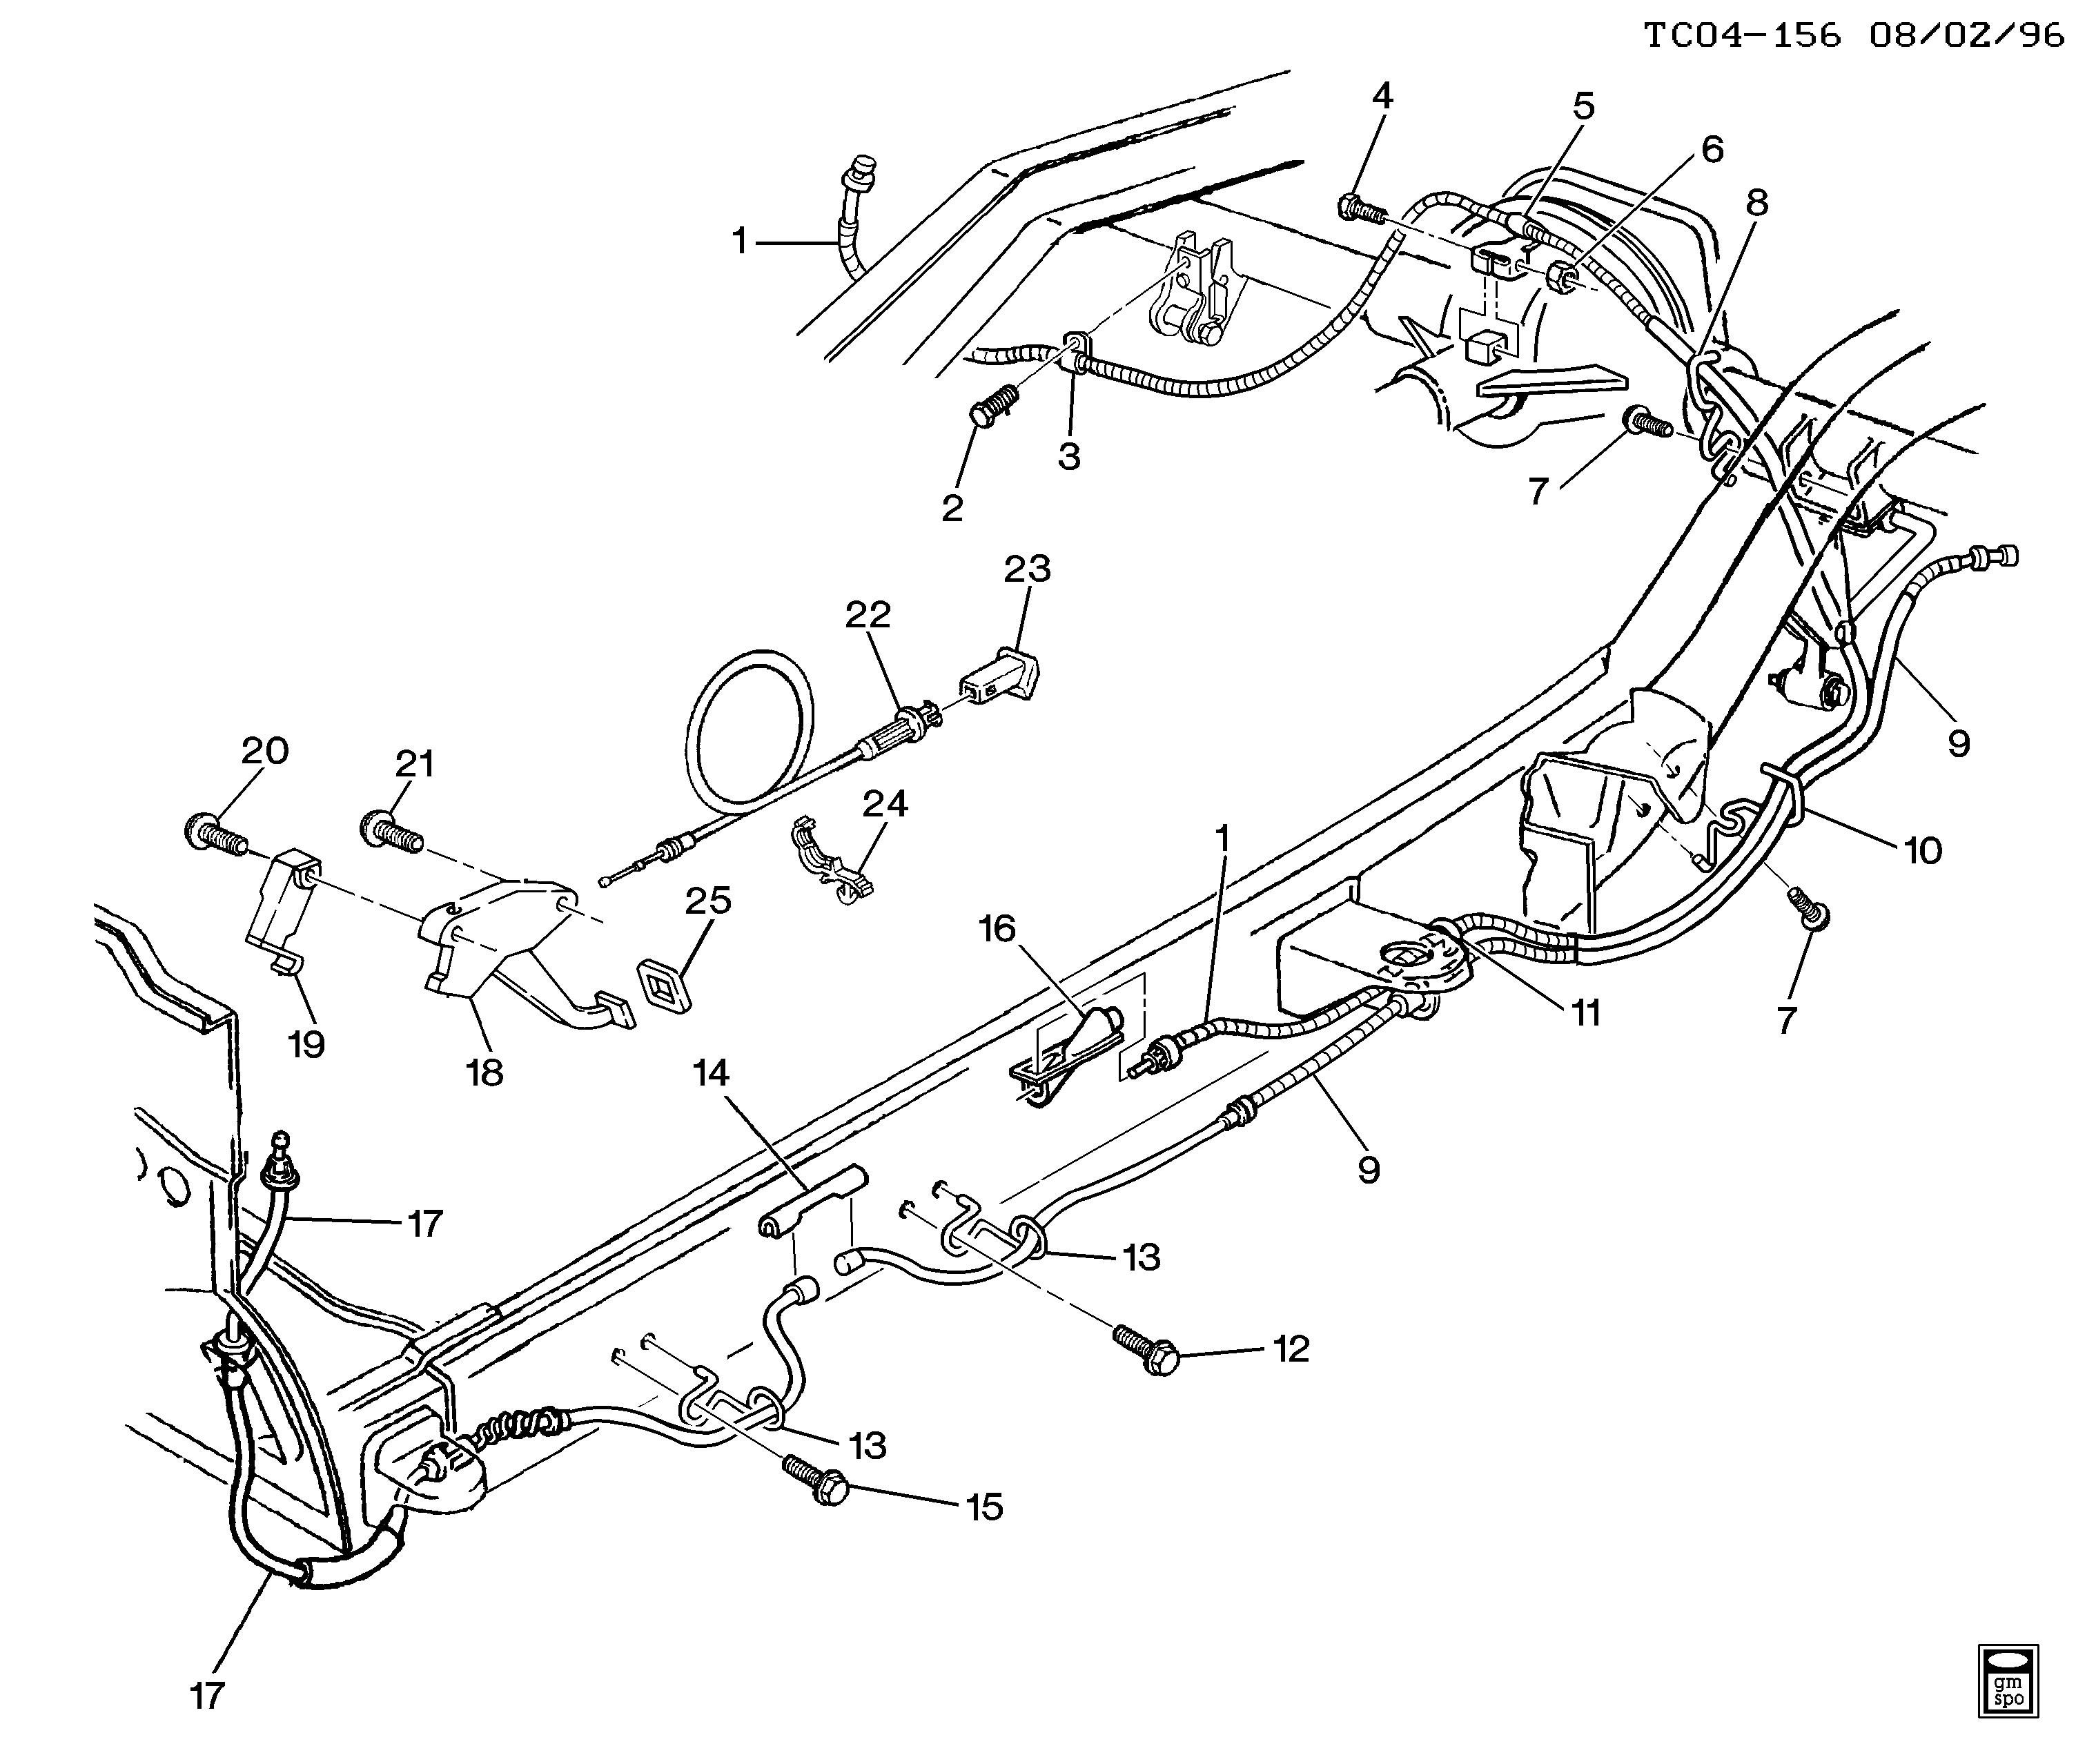 Chevy Silverado Brake Line Diagram